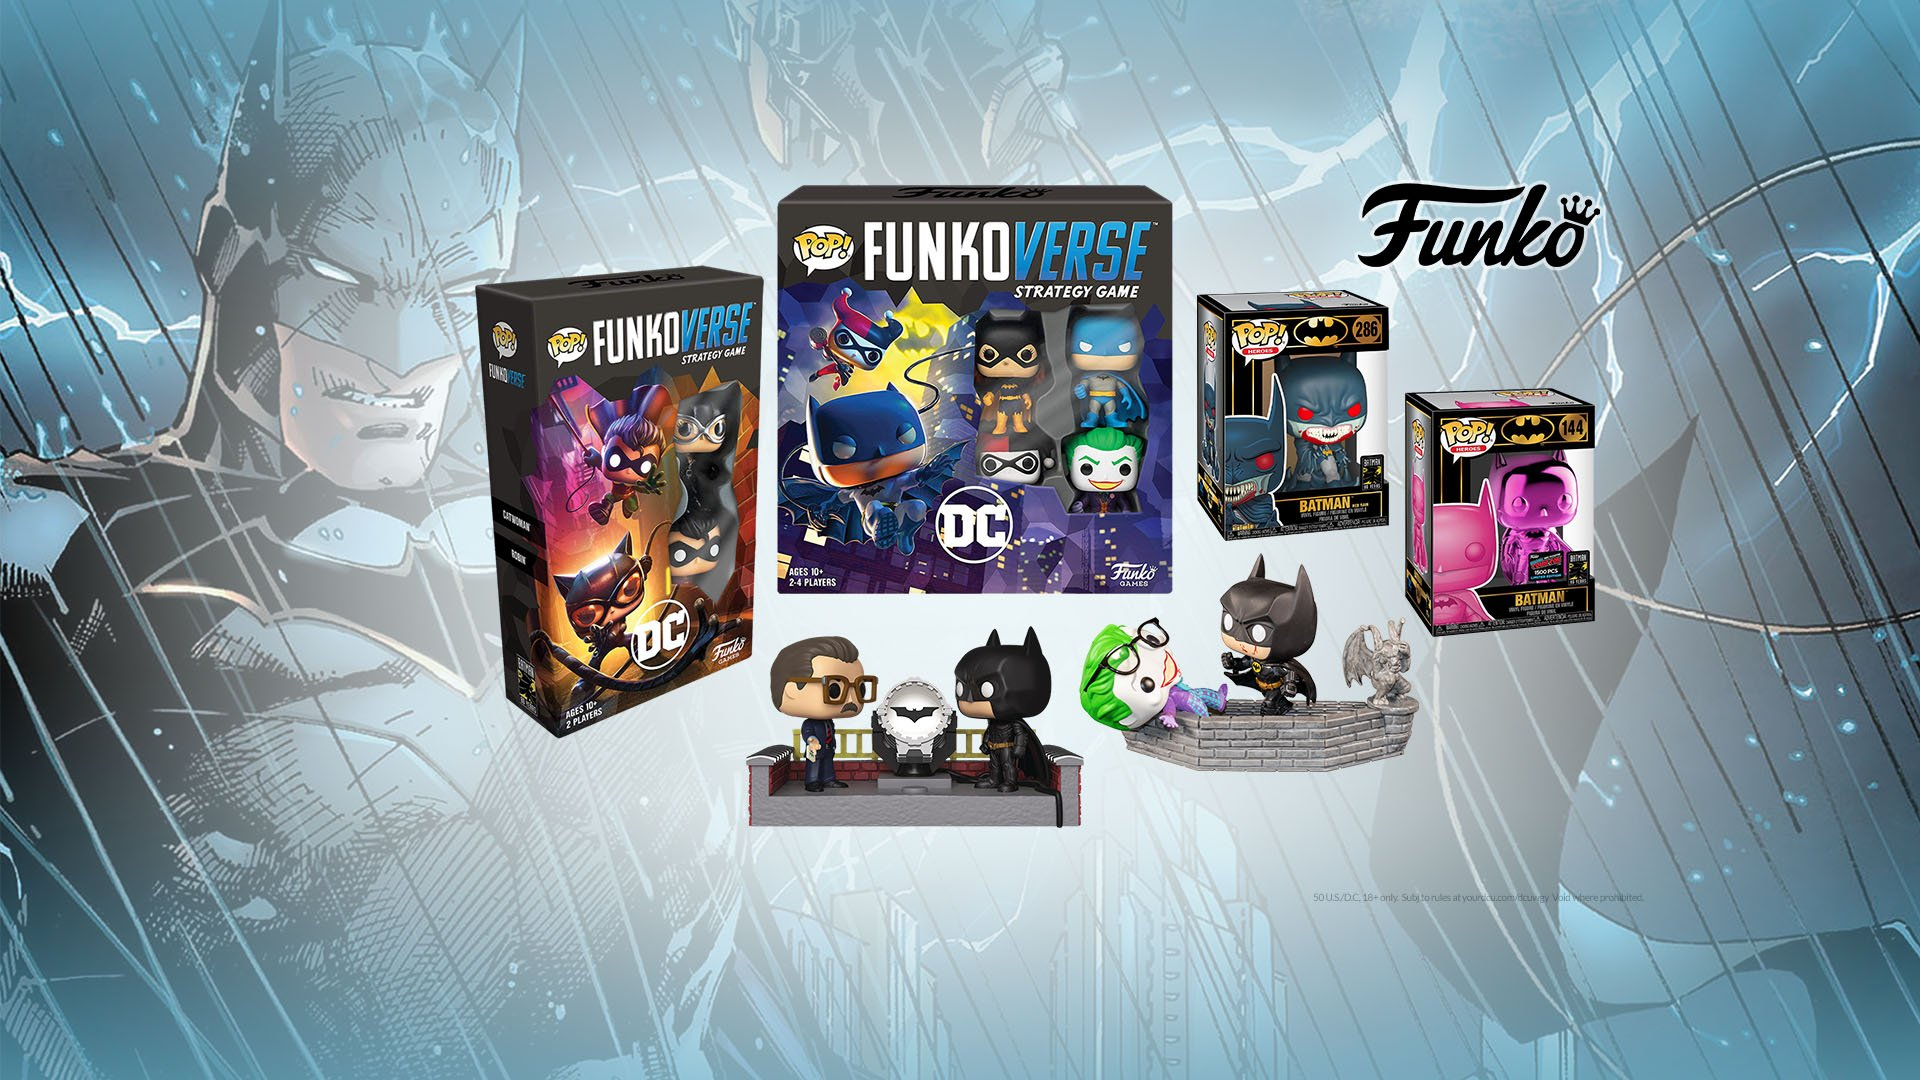 batman_funko_frenzy_sweepstakes_fnl_hero-c2.jpg